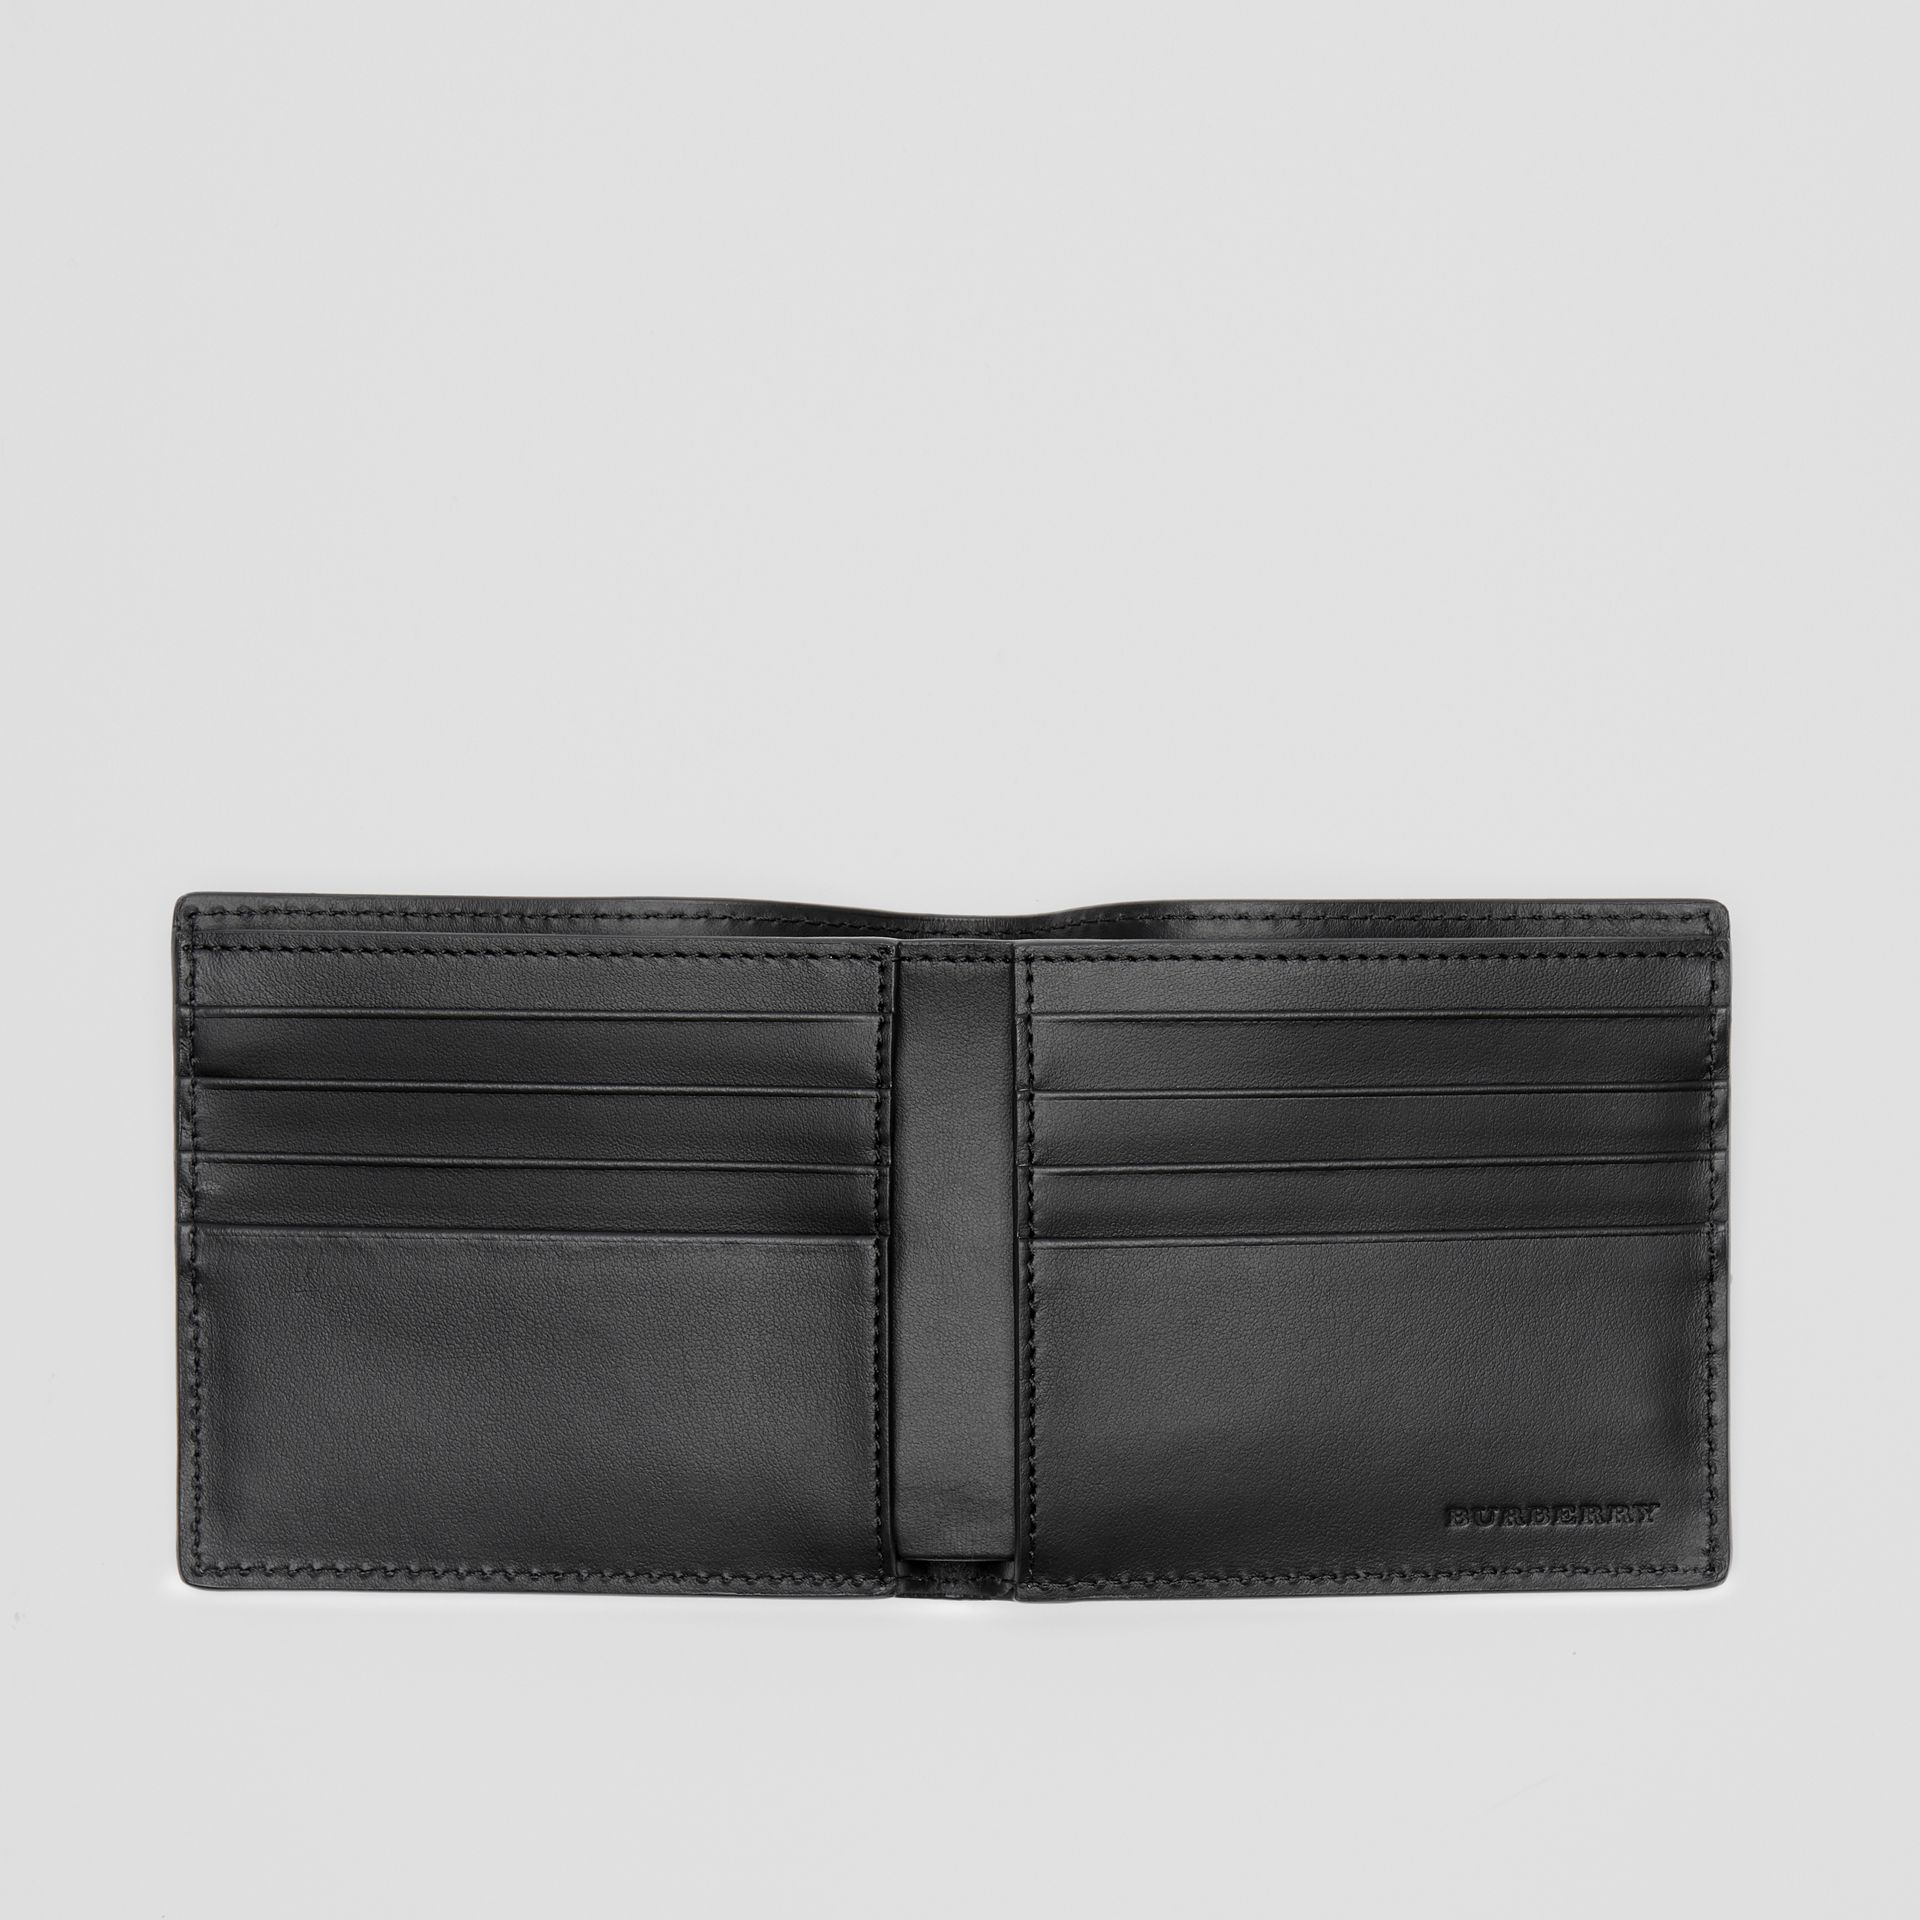 Perforated Logo Leather International Bifold Wallet in Black - Men | Burberry - gallery image 3